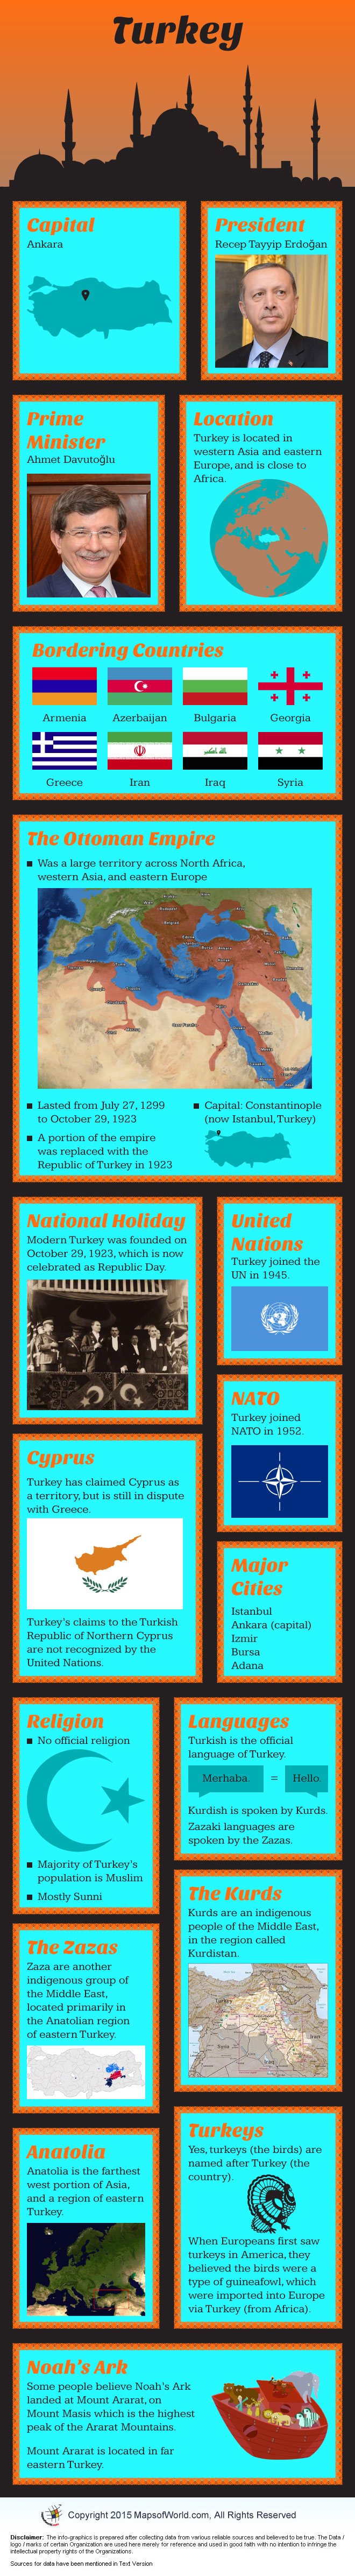 Infographic of Turkey Facts